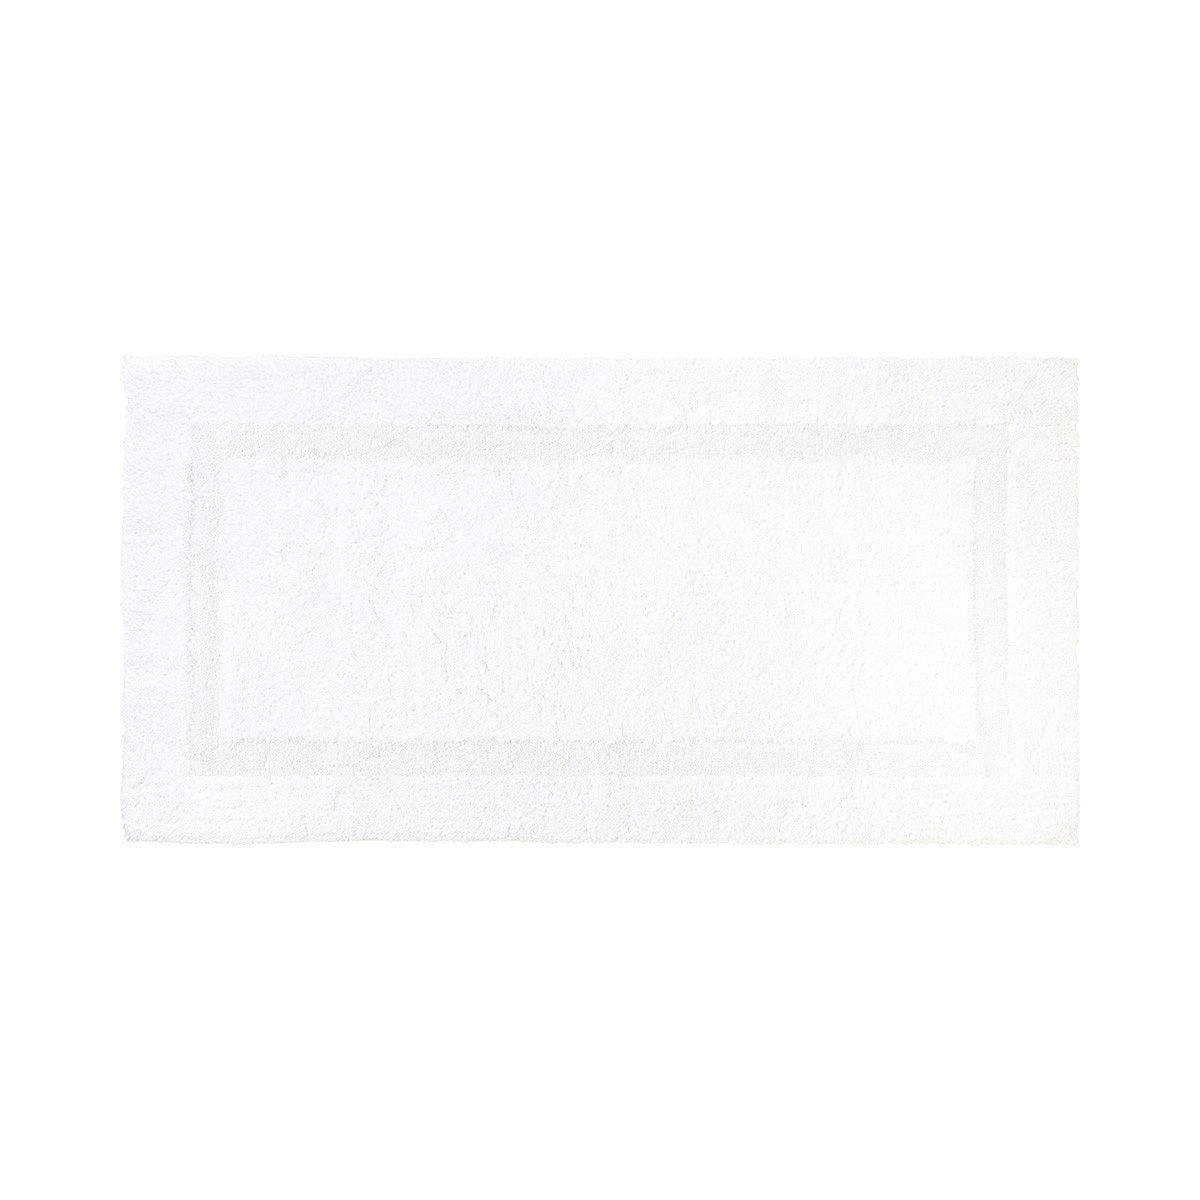 Aquilon Blanc Reversible Bath Rug by Yves Delorme | Fig Linens - White, rectangle, bath mat, rug